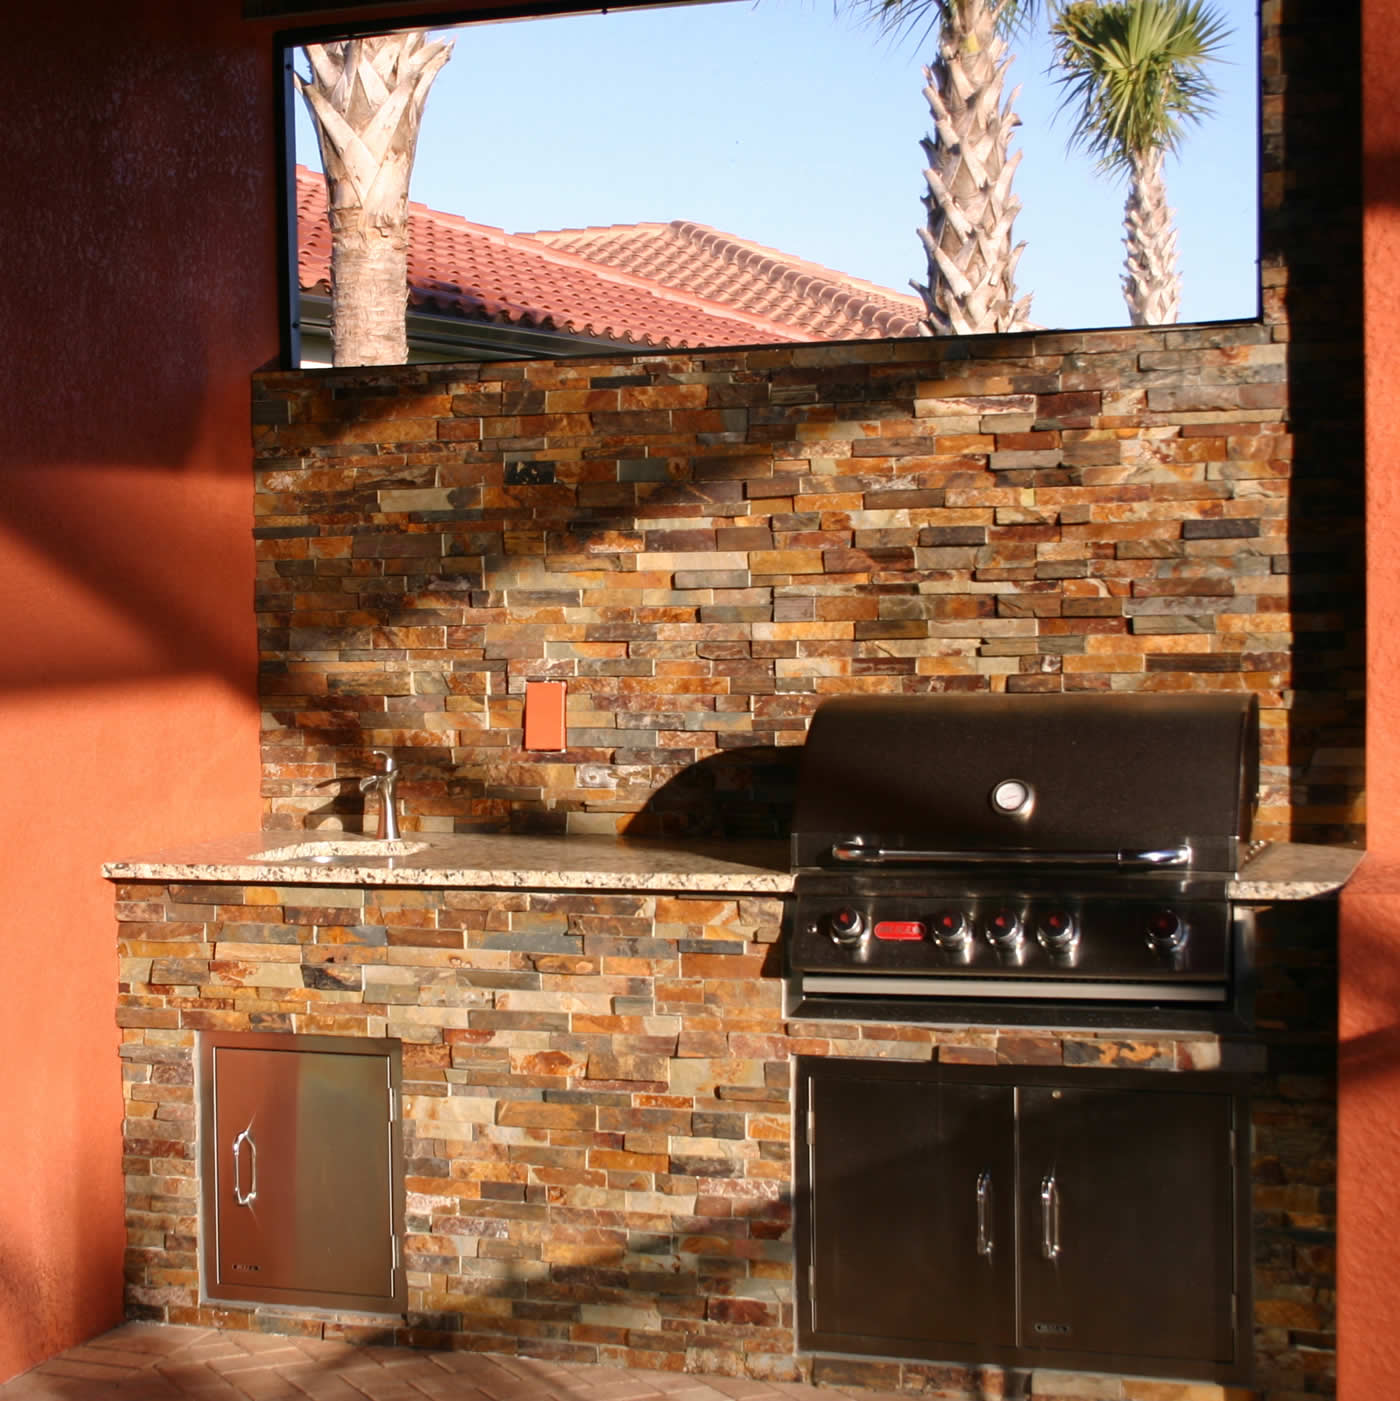 Outdoor Kitchen Florida: The Introductory Outdoor Kitchen